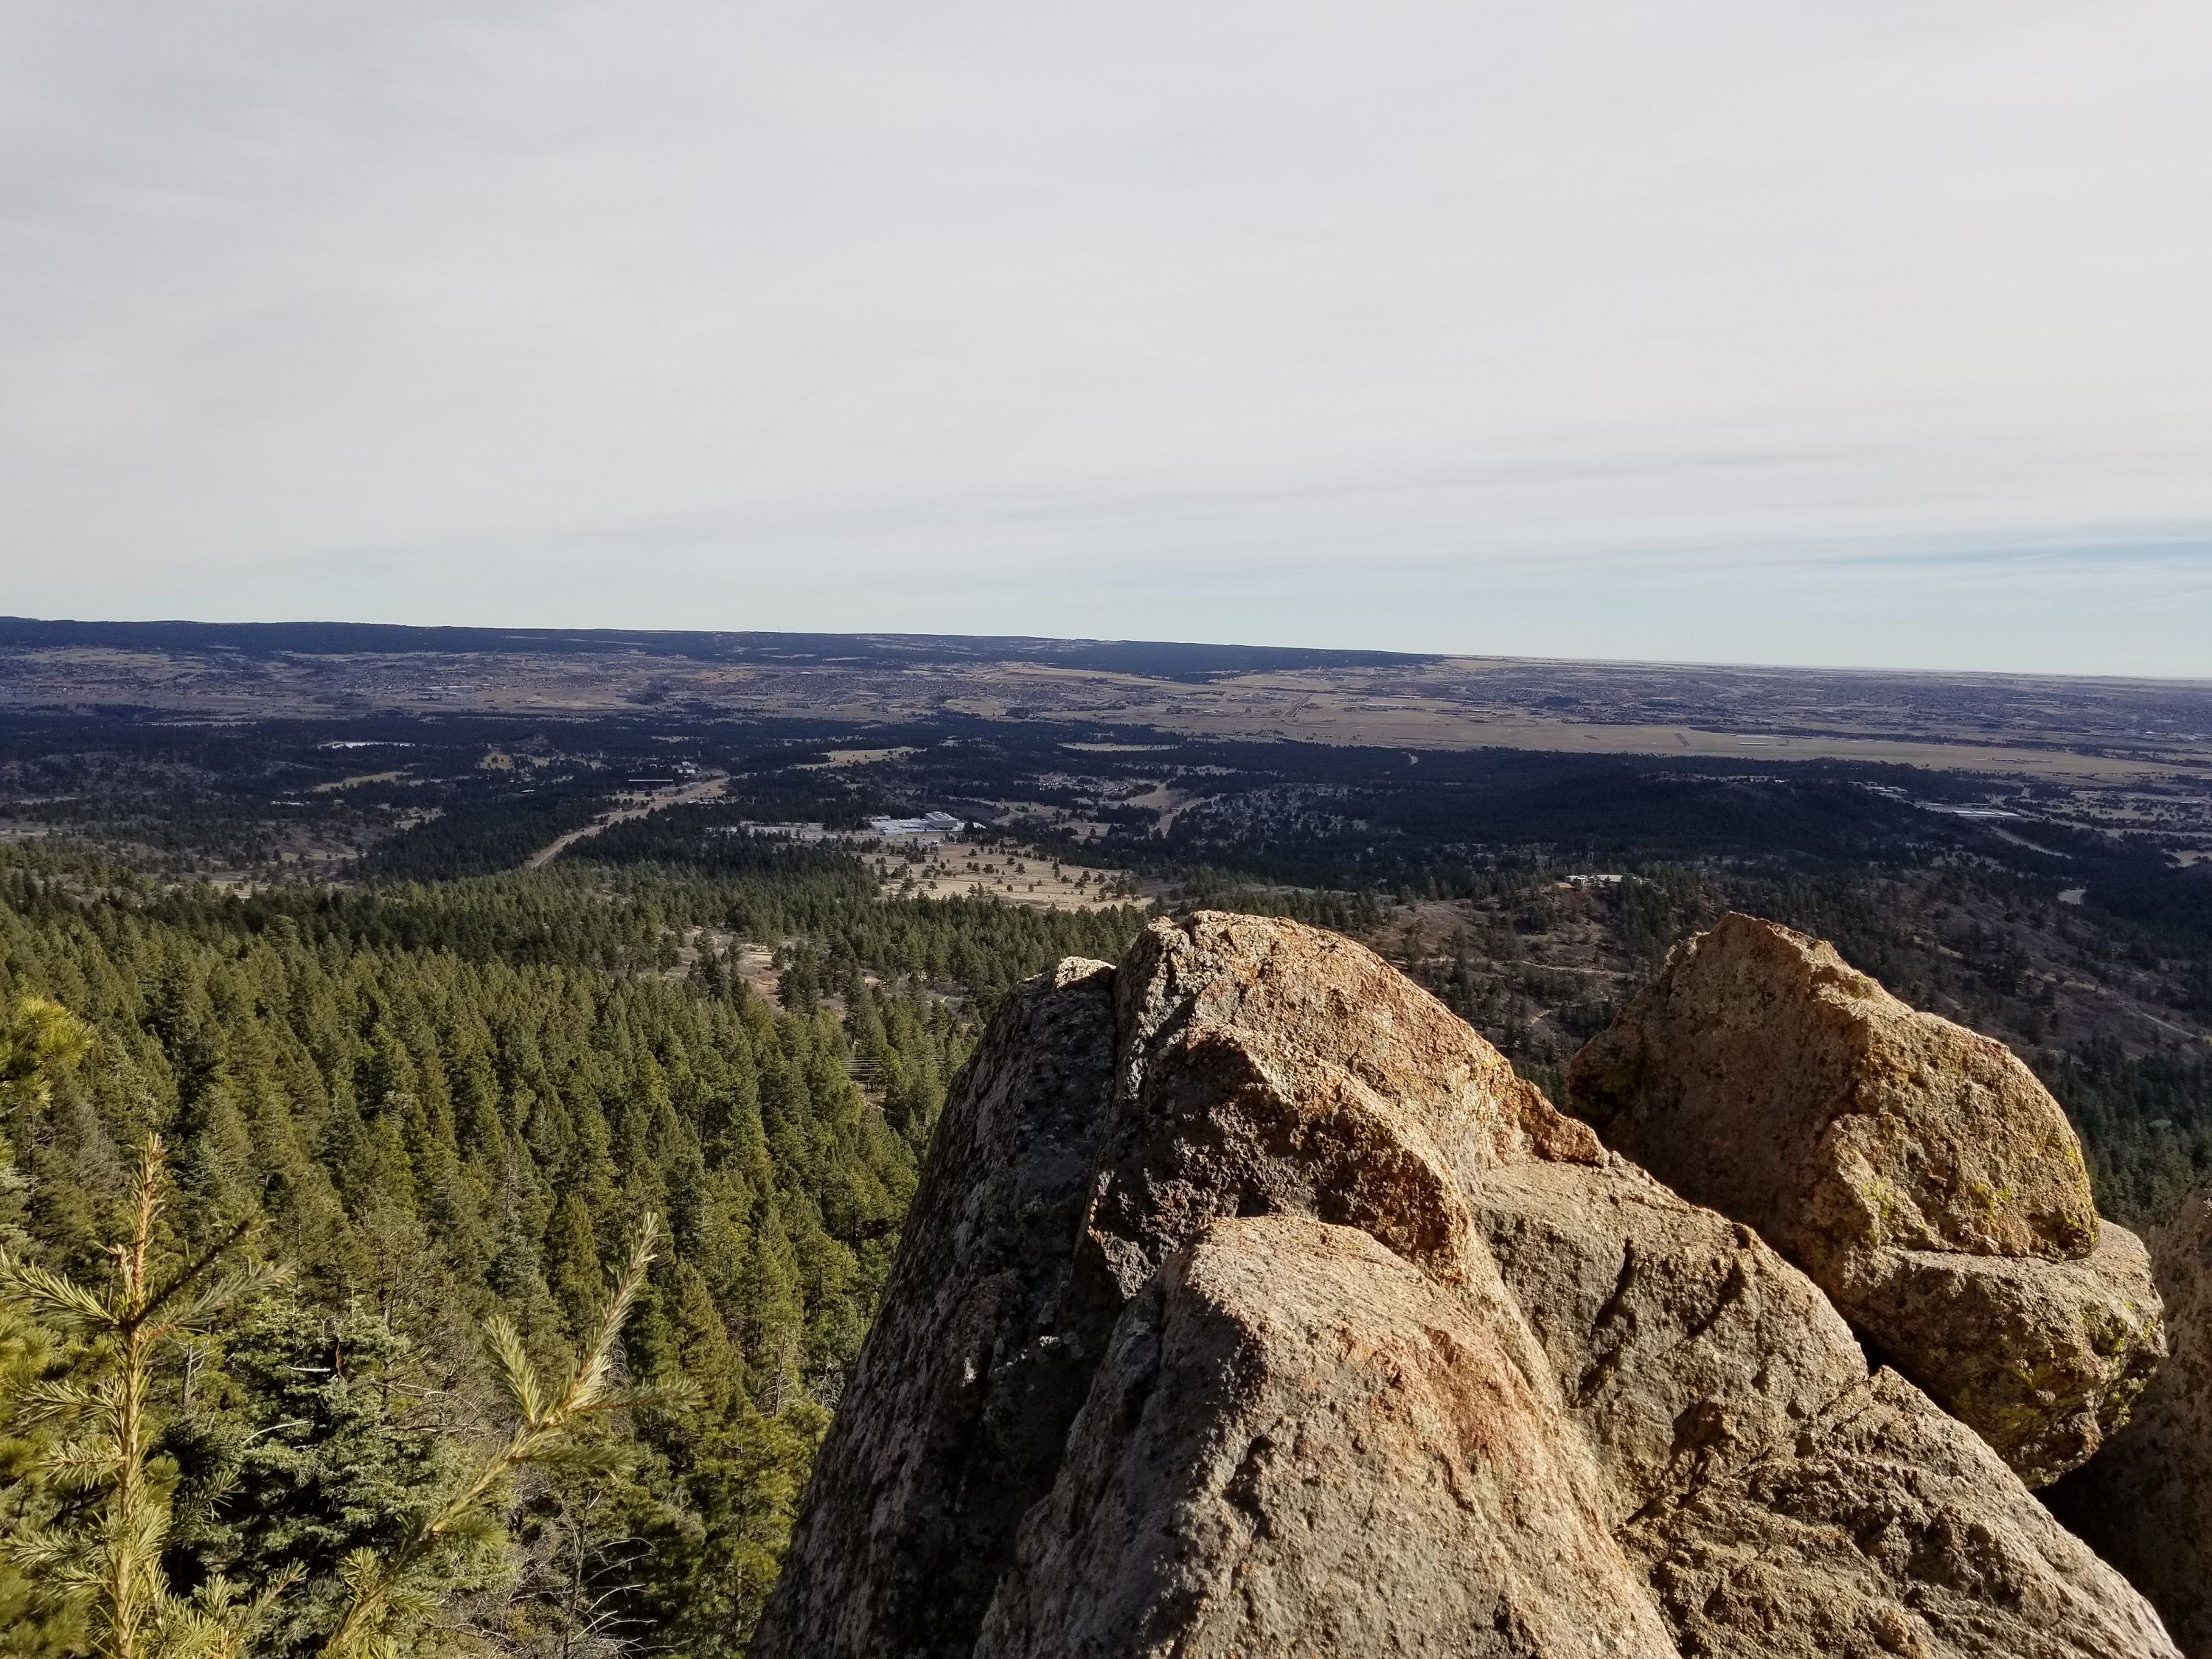 Looking down from Stanley Canyon near the Air Force